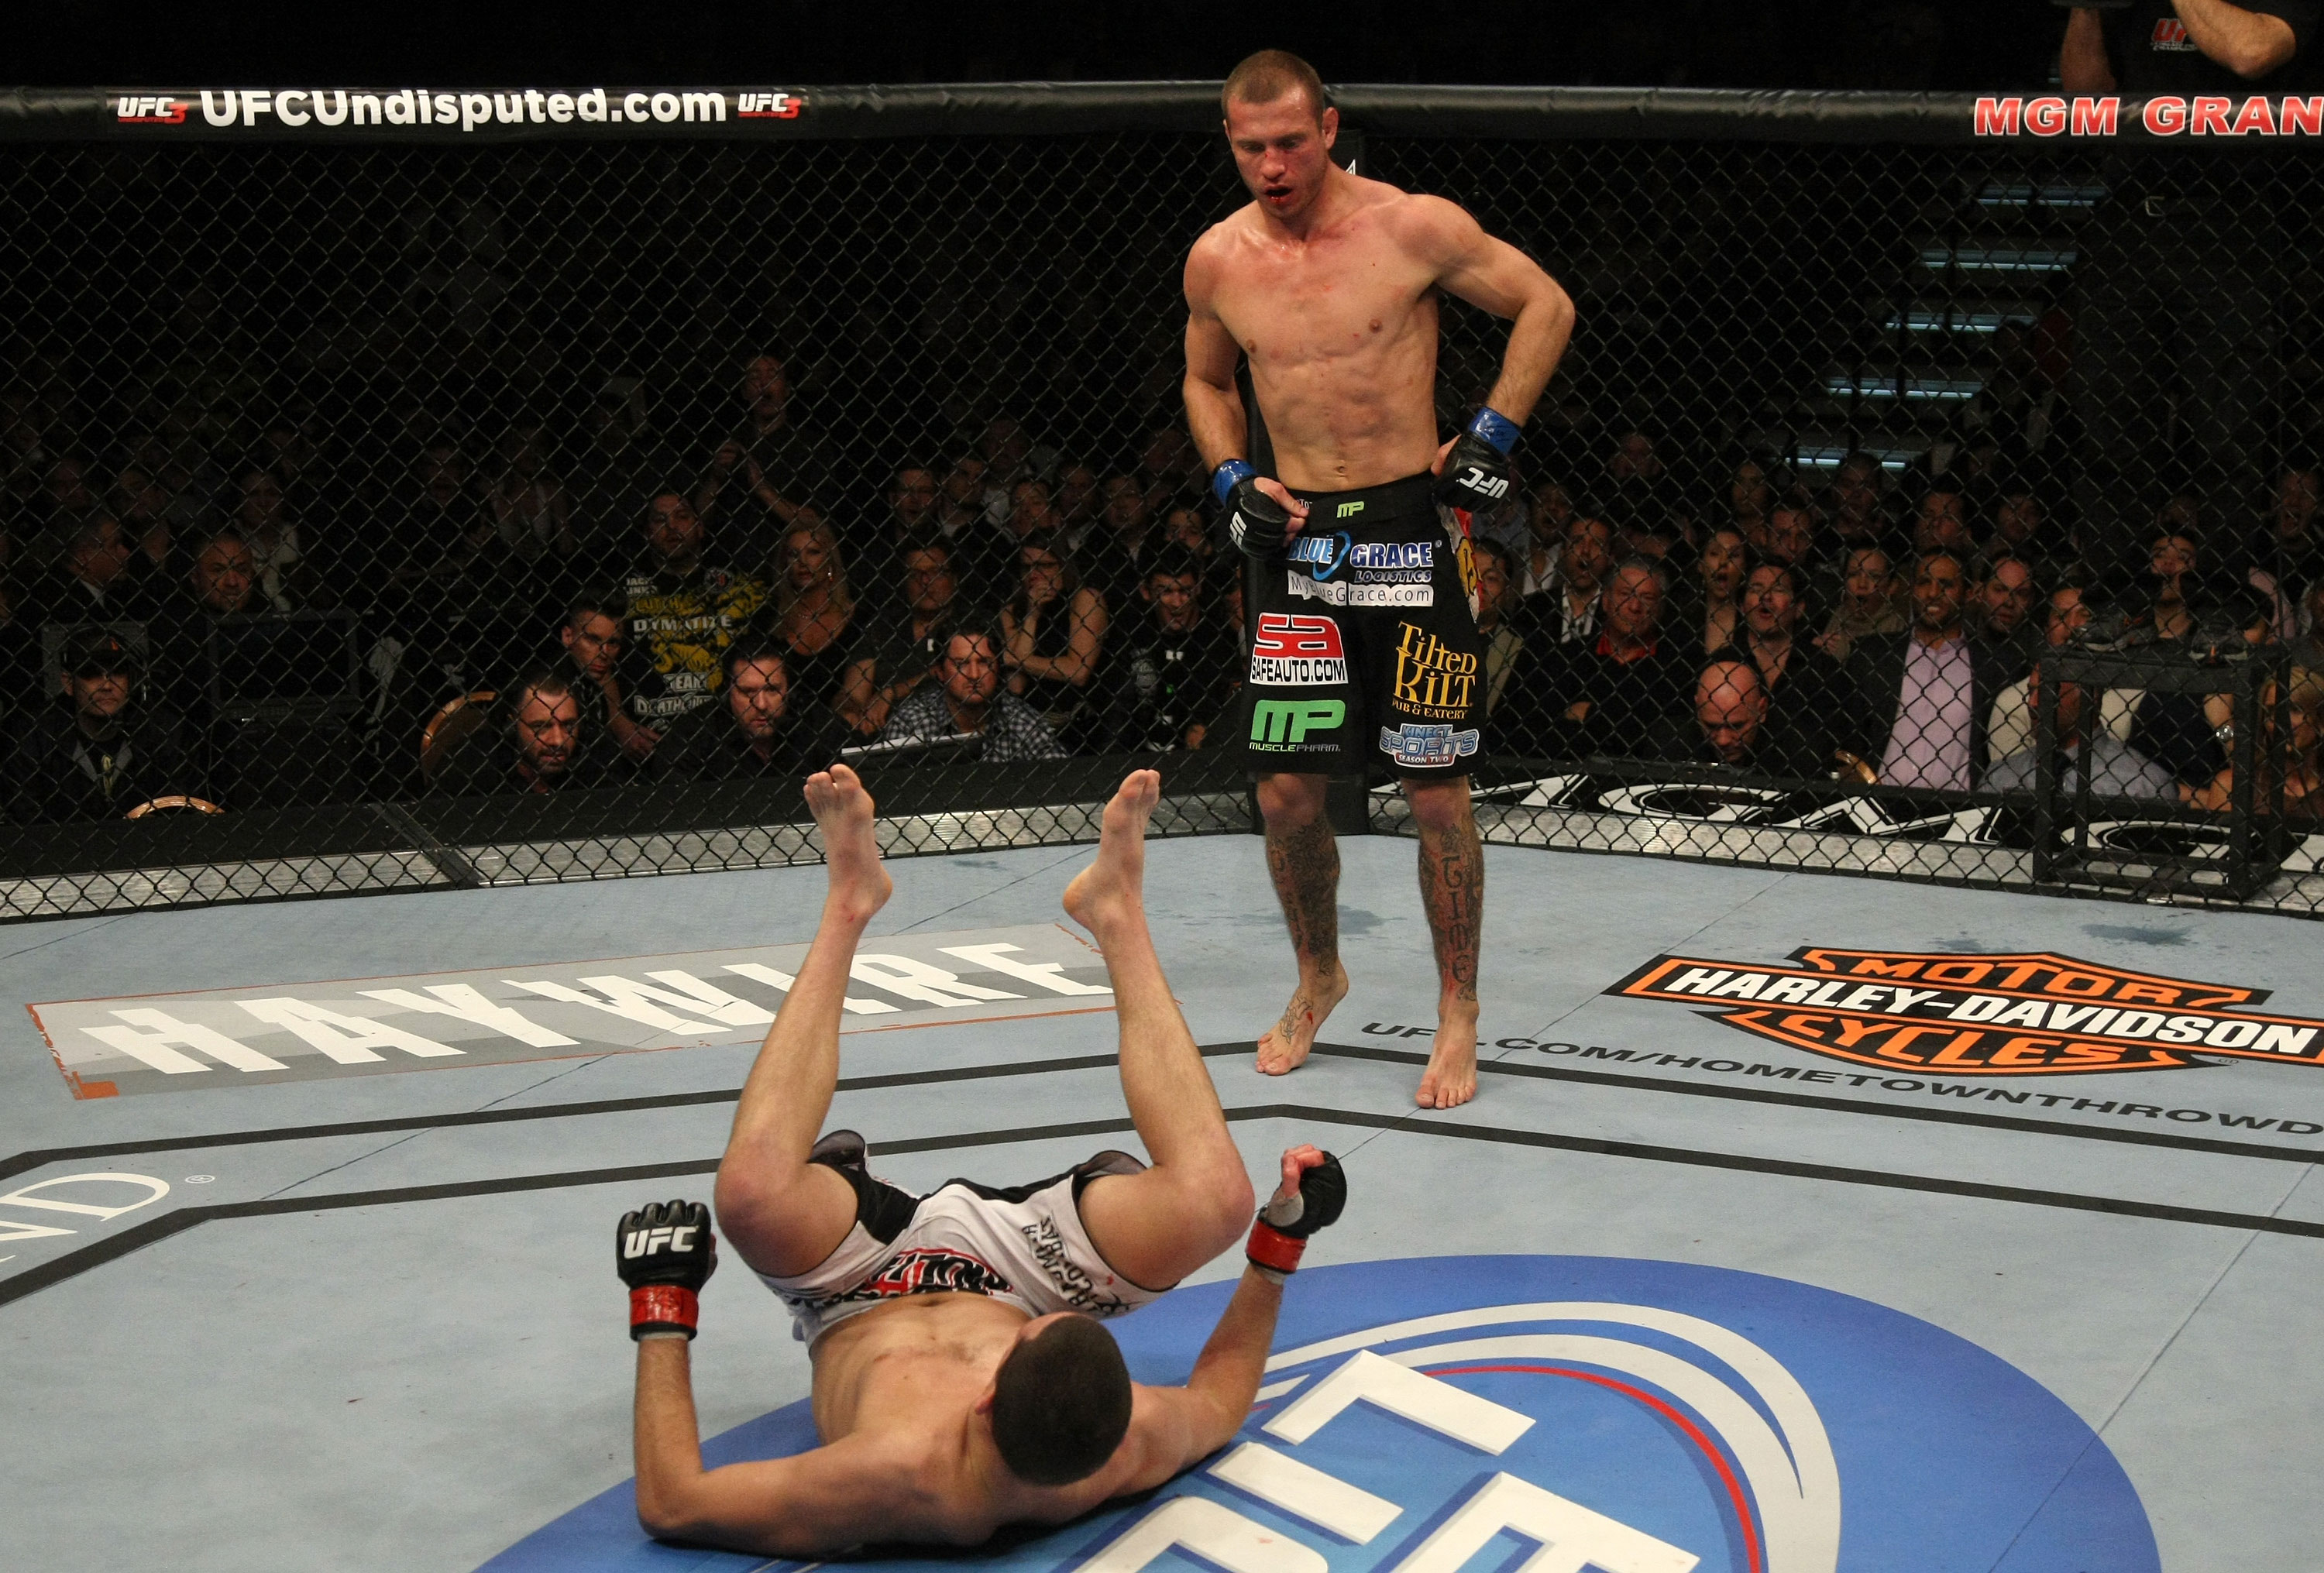 LAS VEGAS, NV - DECEMBER 30:  Donald Cerrone (top) stands over Nate Diaz after a knockdown during the UFC 141 event at the MGM Grand Garden Arena on December 30, 2011 in Las Vegas, Nevada.  (Photo by Donald Miralle/Zuffa LLC/Zuffa LLC via Getty Images) *** Local Caption *** Donald Cerrone; Nate Diaz